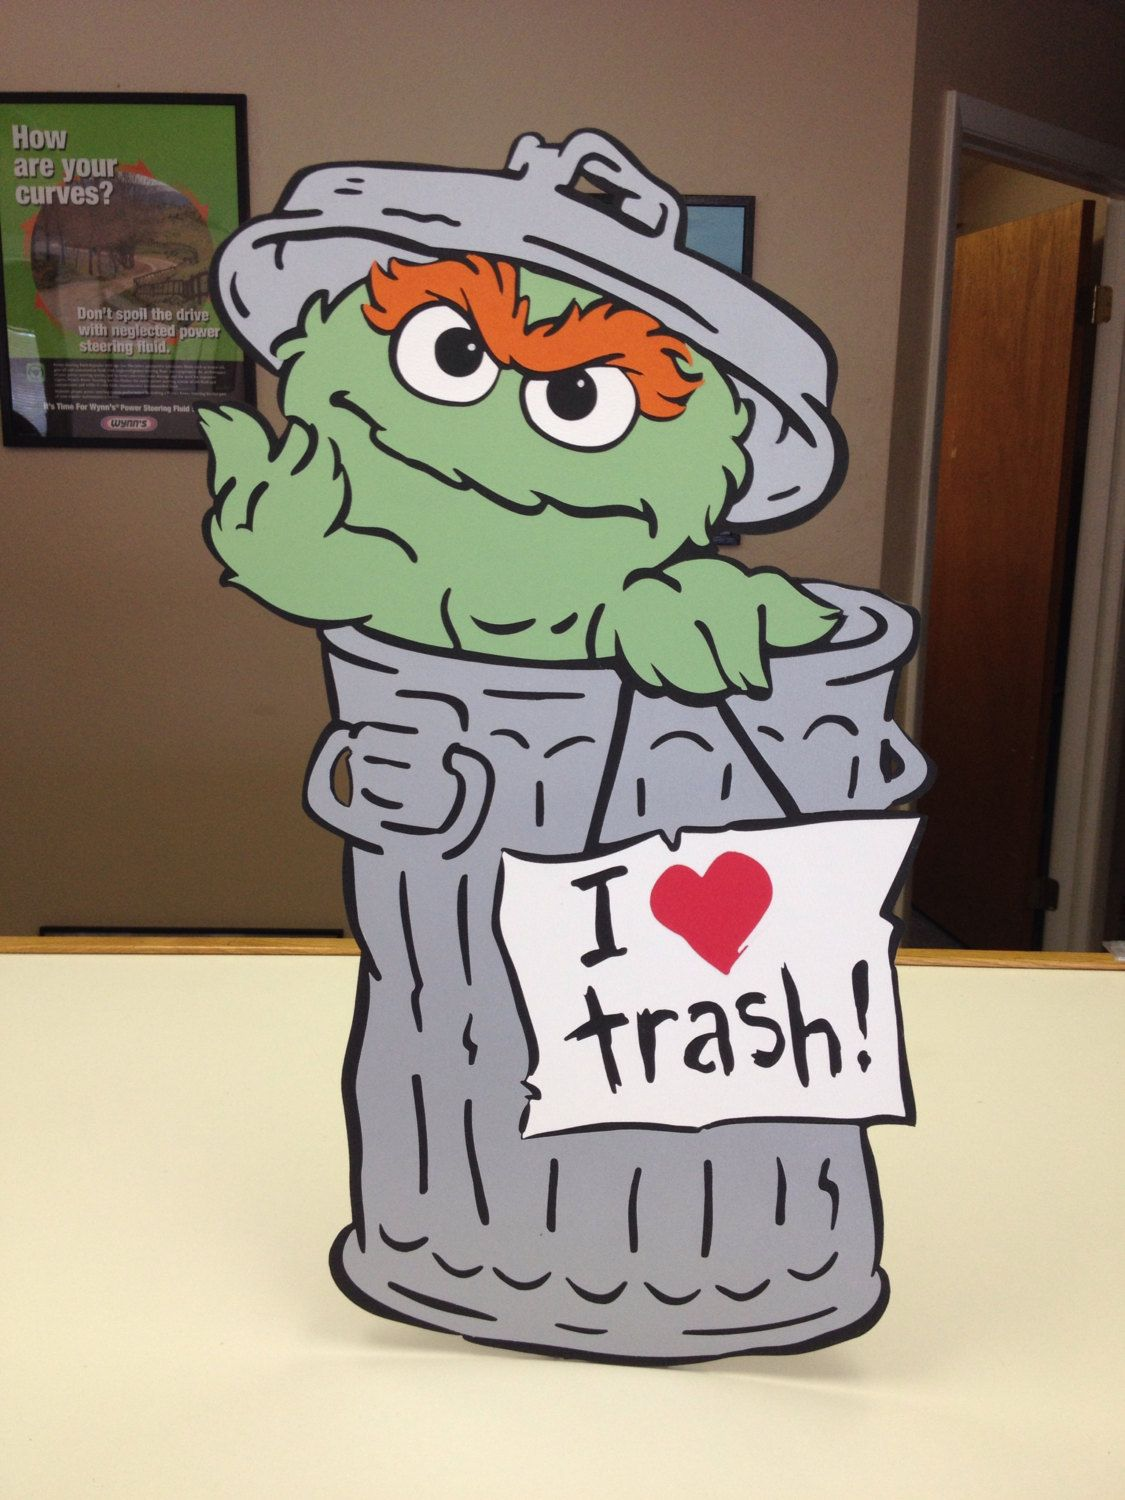 e7229f9b3 Sesame Street Oscar the Grouch I Love Trash Decoration Stand Up, standee,  Sesame Street